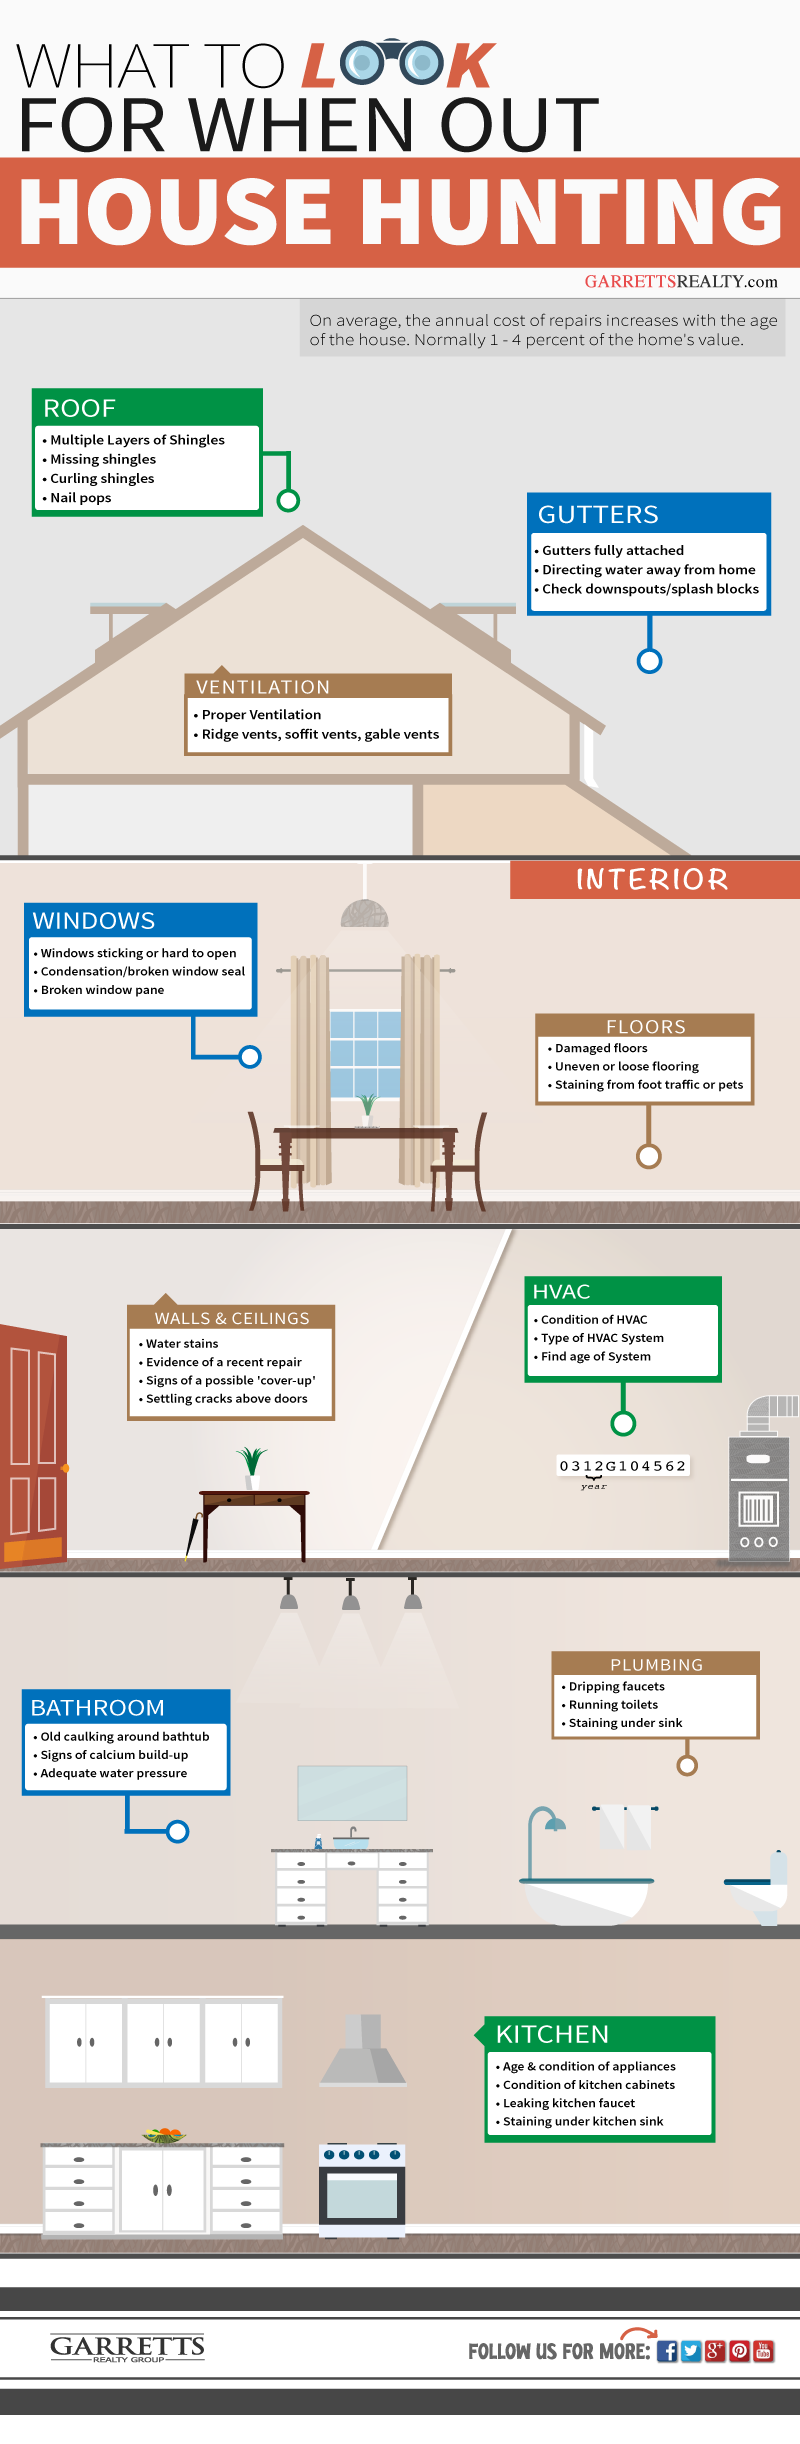 house hunting tips - Infographic.